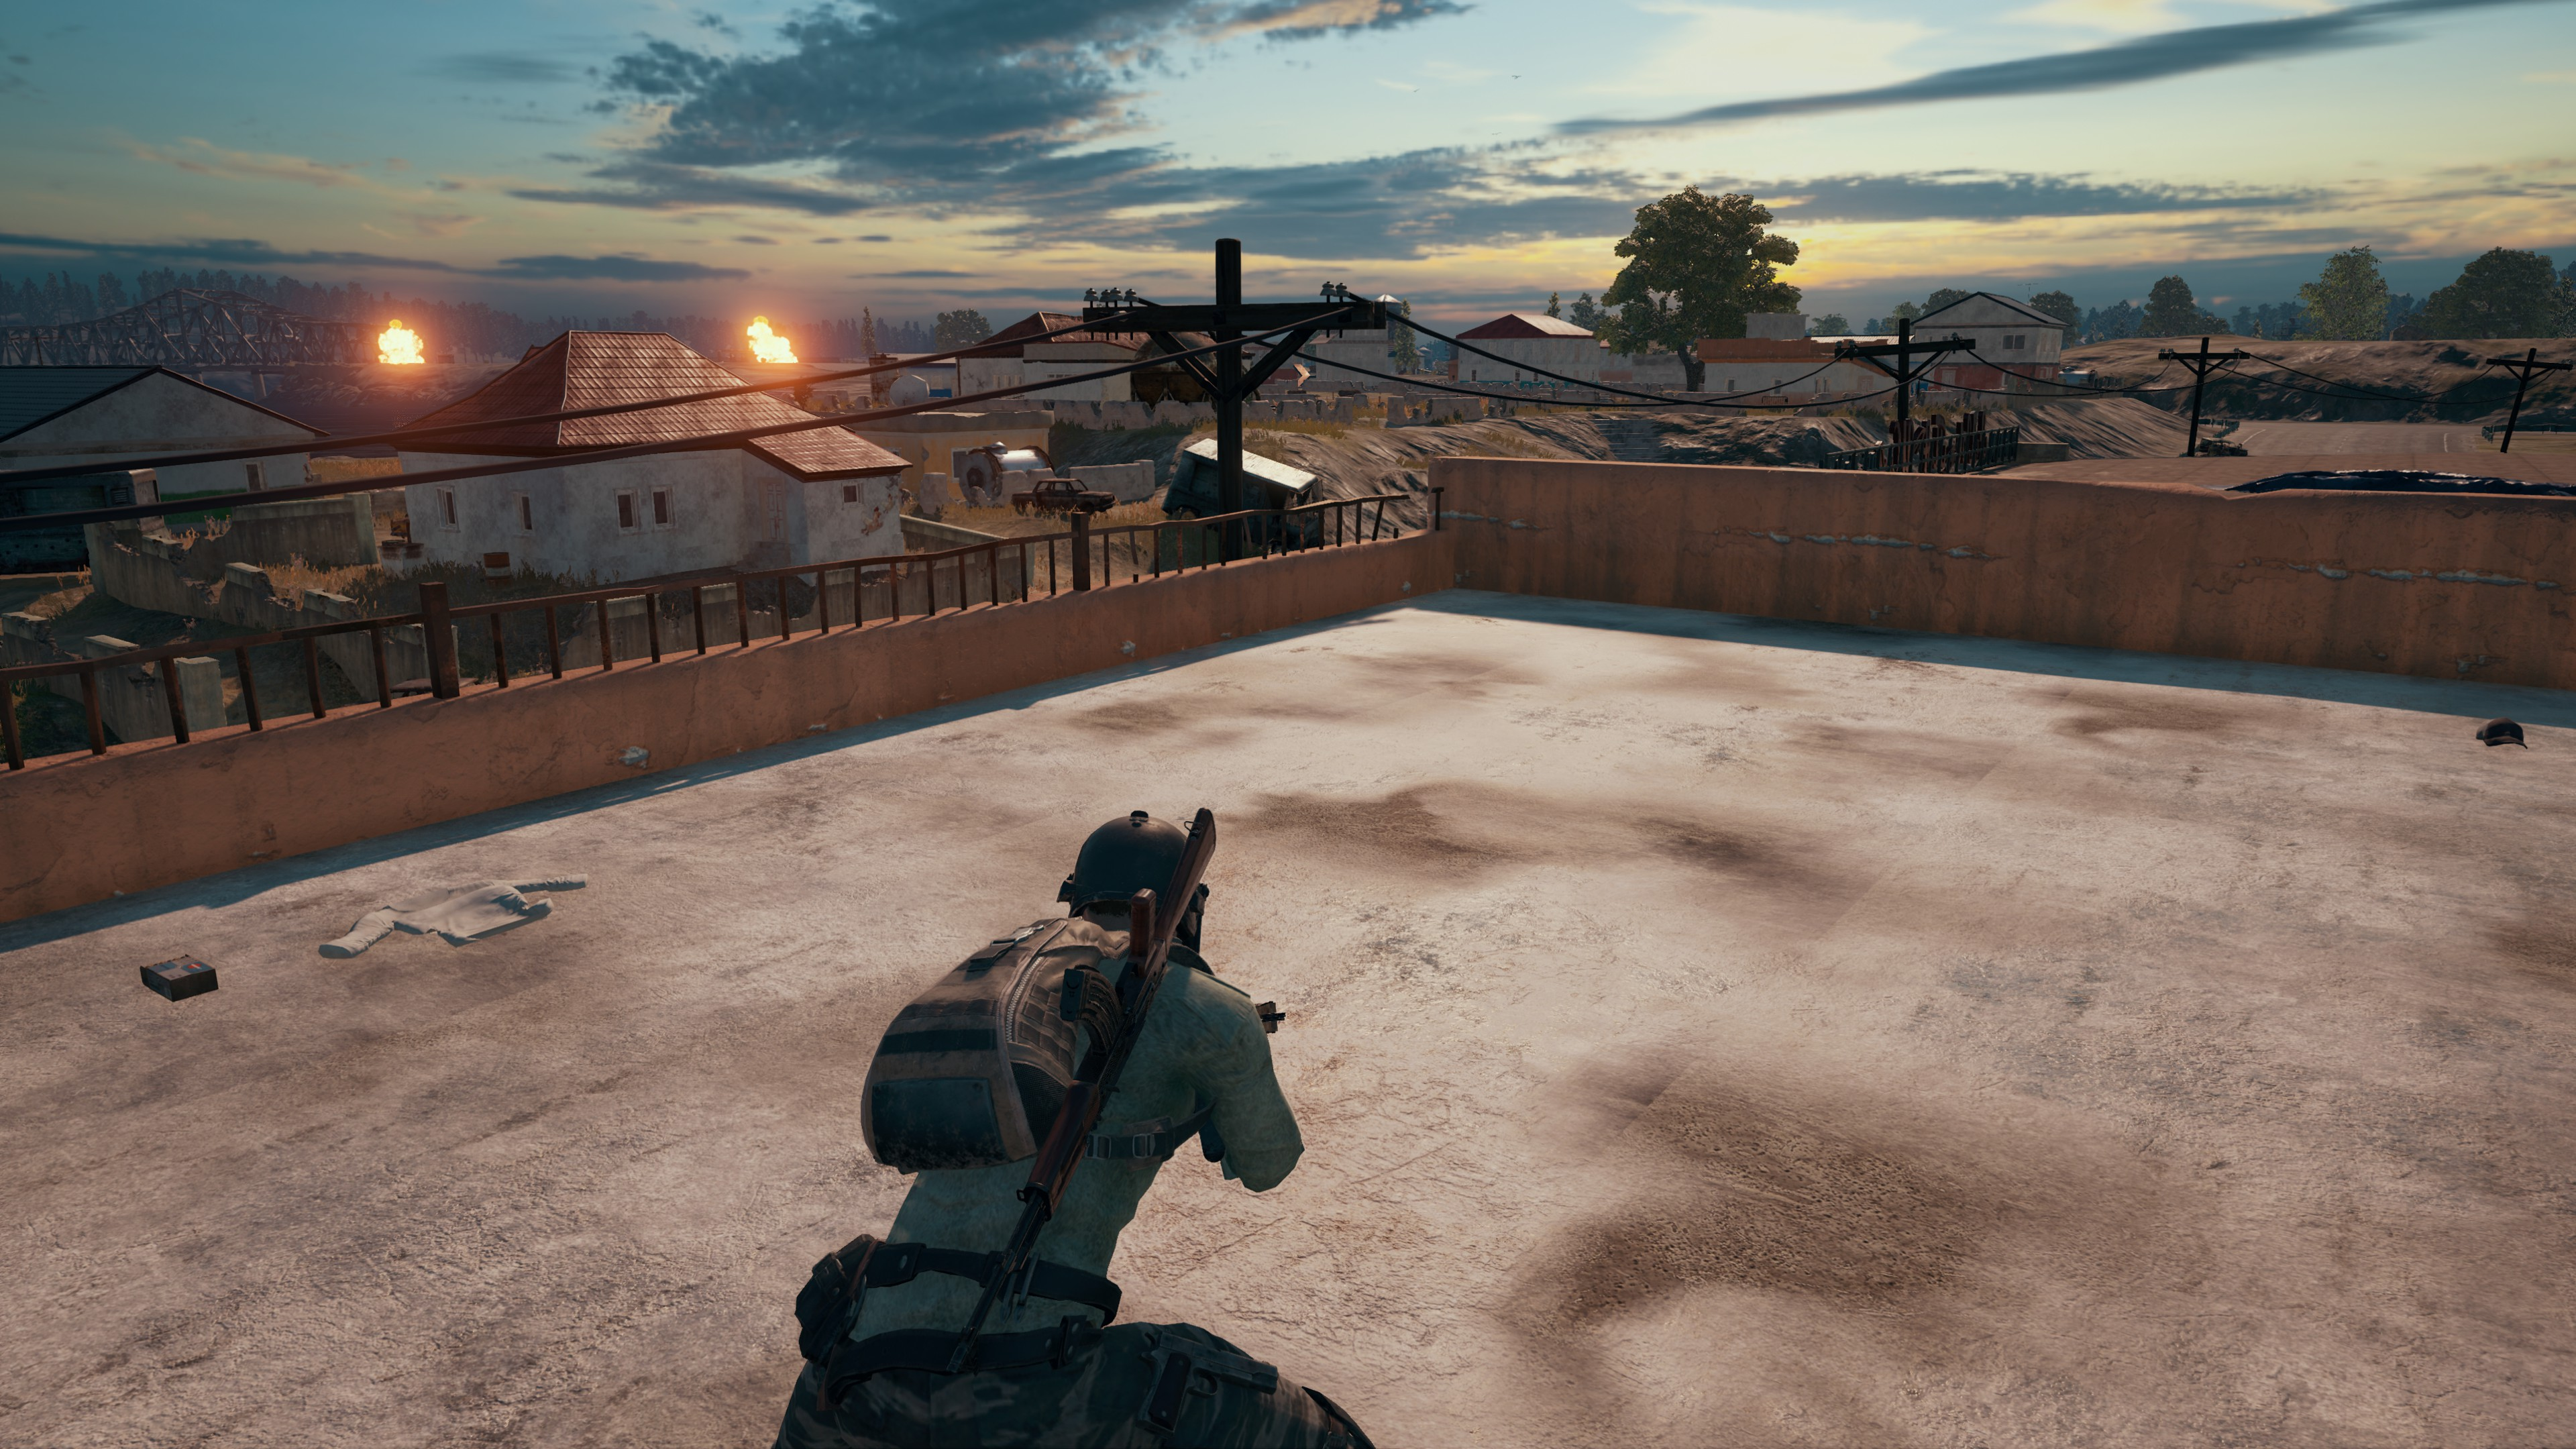 What You Can Learn From The Team Behind Pubg: 'PlayerUnknown's Battlegrounds' Advanced Tactics Guide